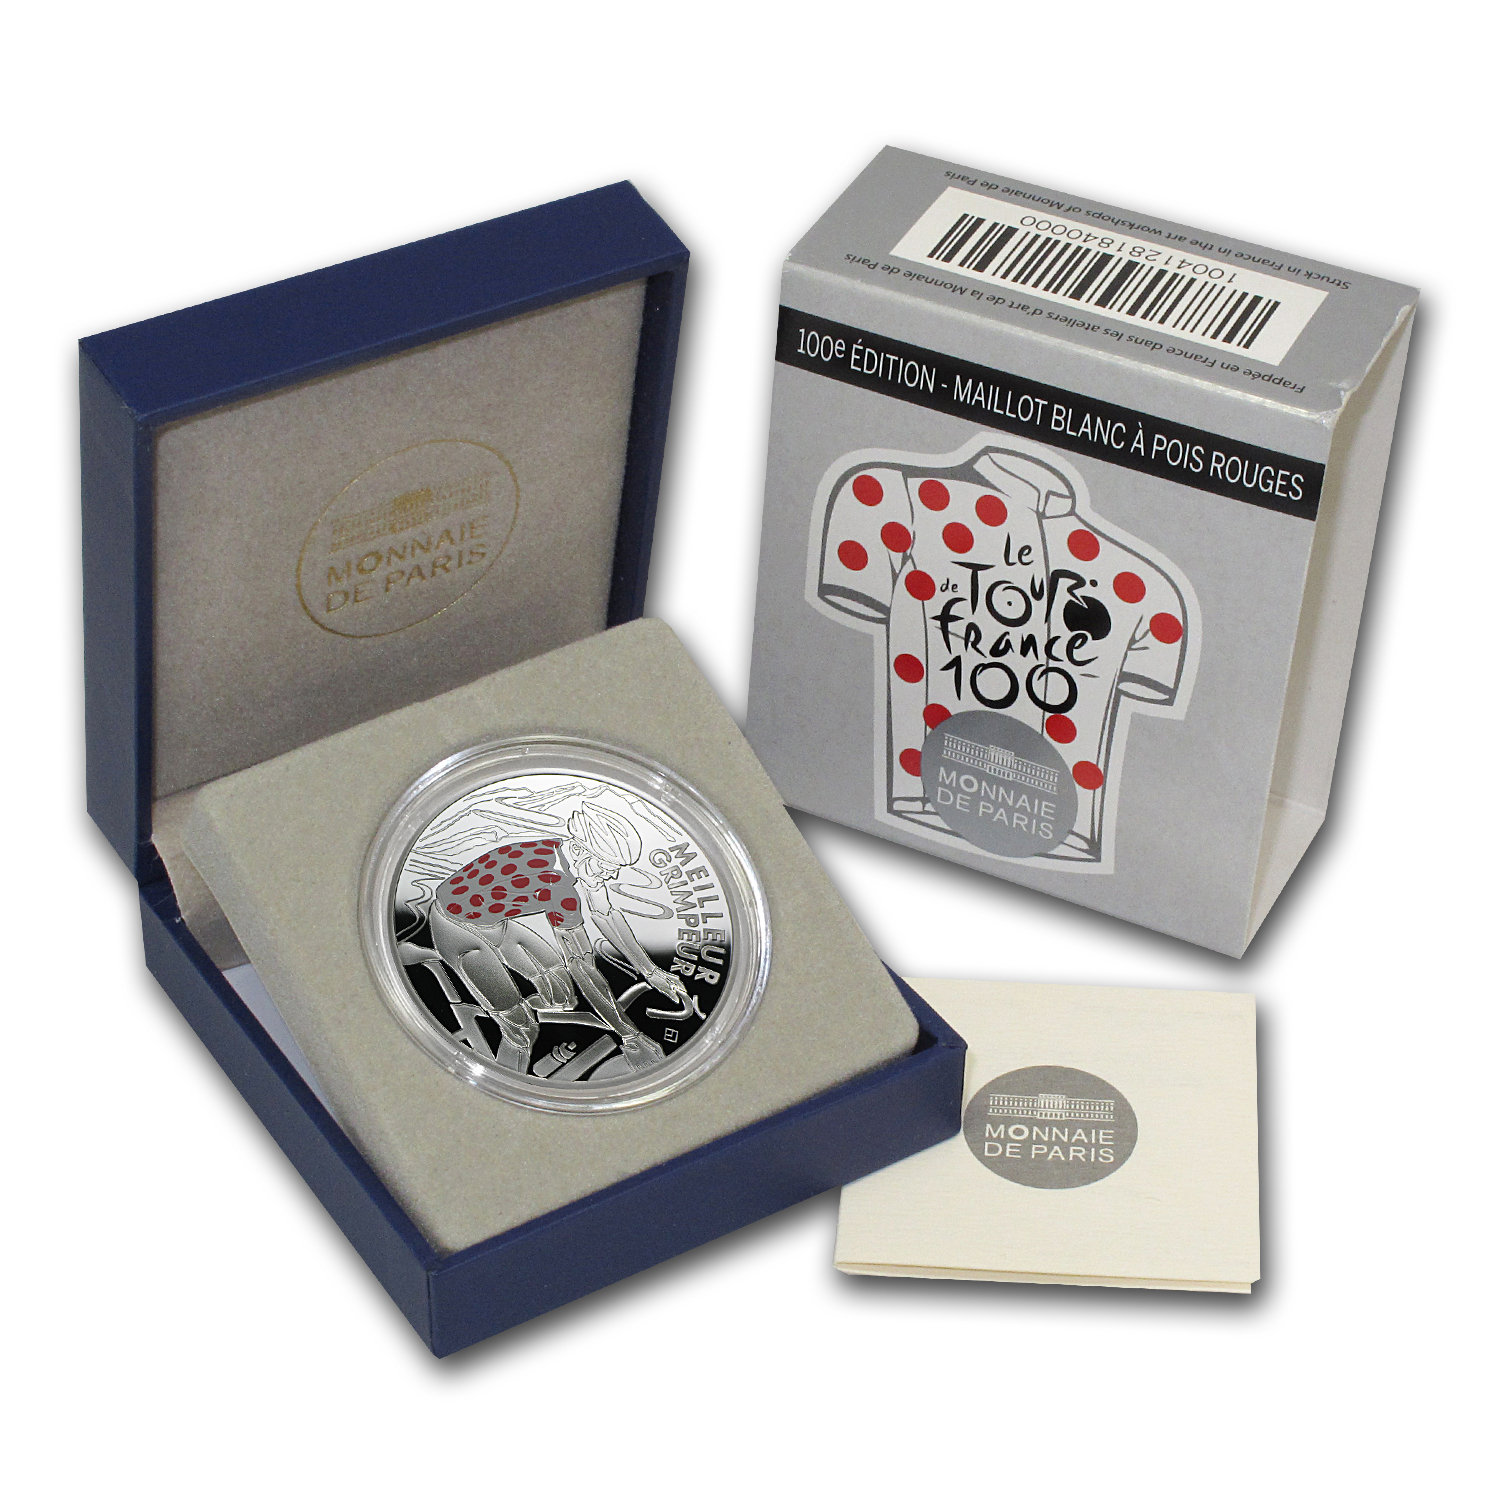 2013 10€ Silver 100th Edition Tour de France - Red Spotted Jersey